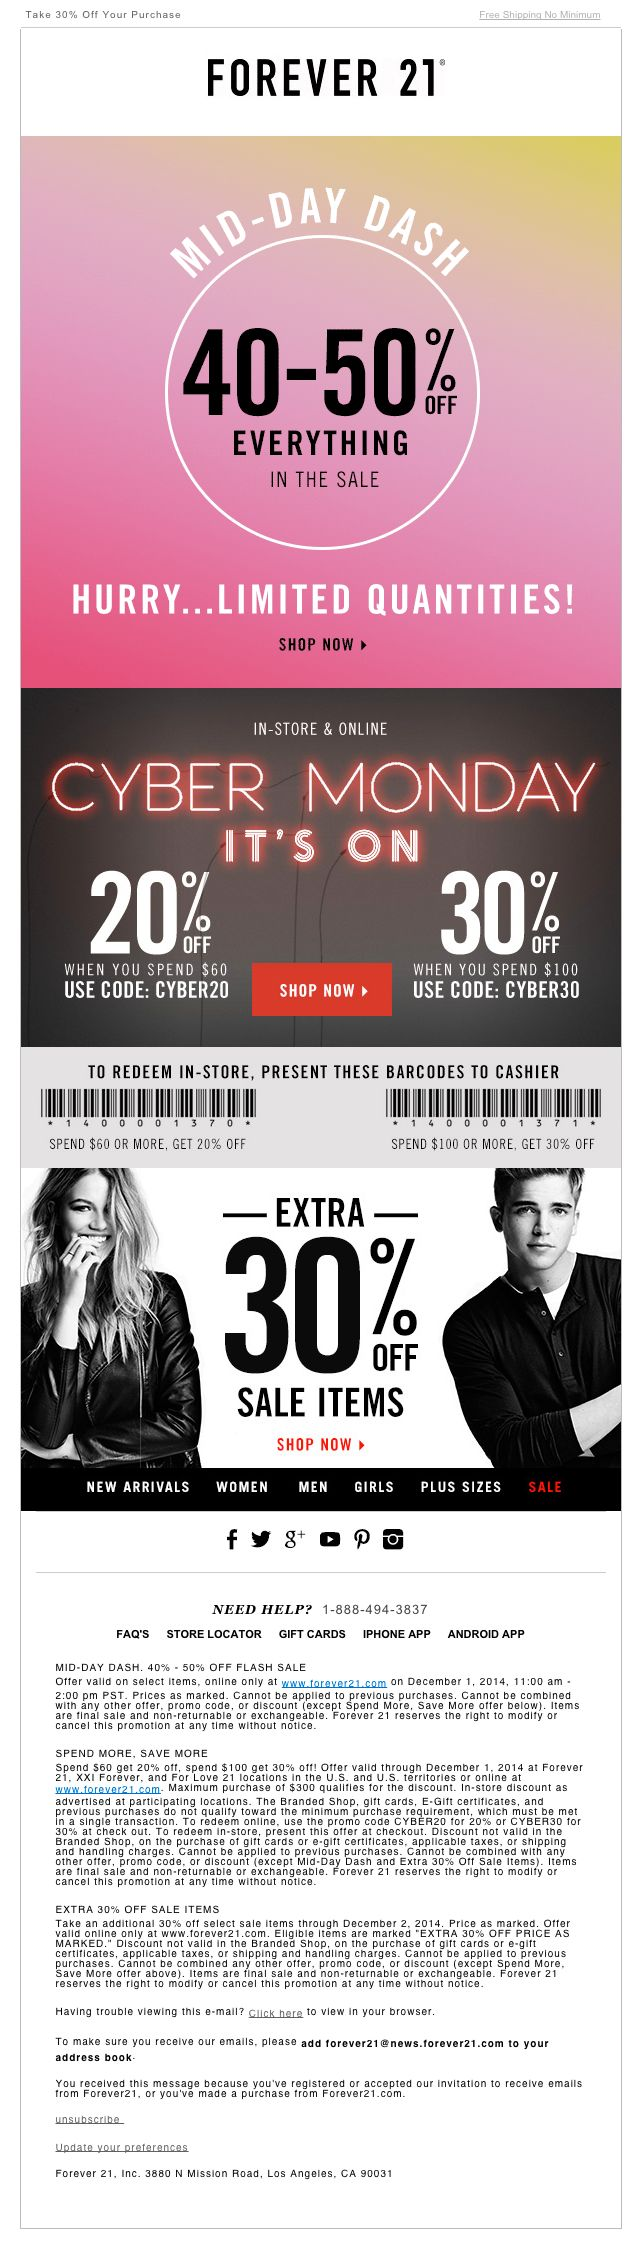 "Forever 21 - Cyber Monday email - animated .gif - Dec. 1, 2014 -""50% Off Flash Sale ★ The Clock is Ticking‏"""